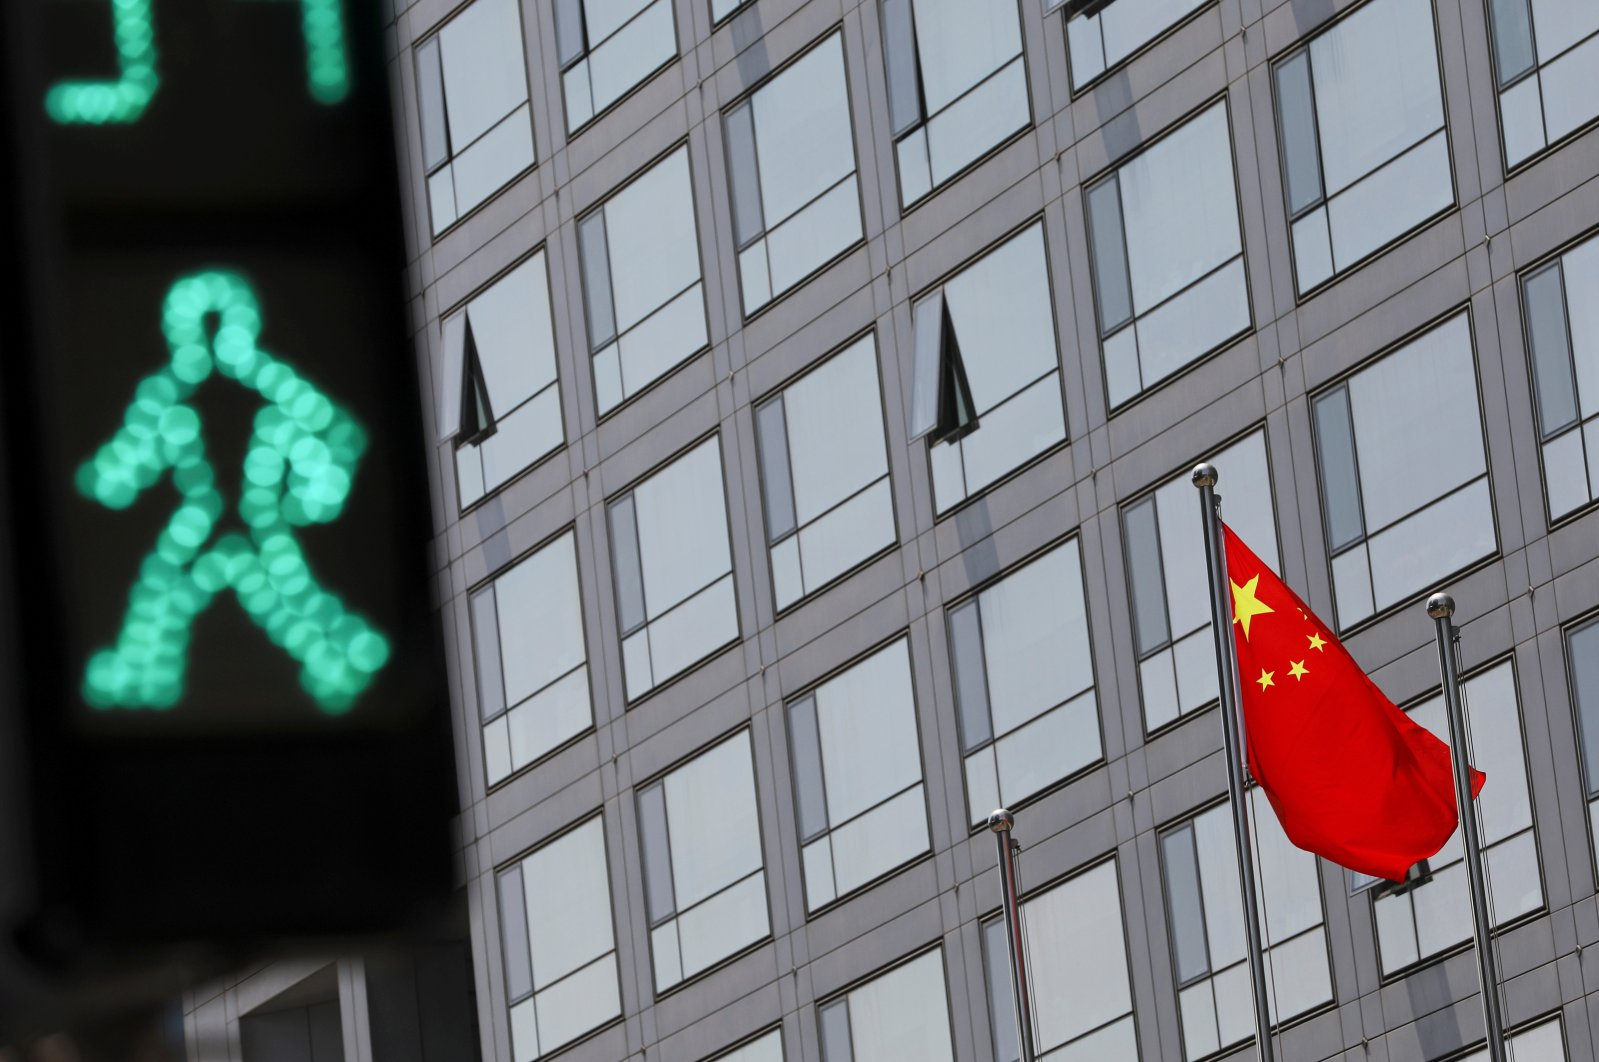 A Chinese national flag flutters outside the China Securities Regulatory Commission (CSRC) building on the Financial Street in Beijing, China, July 9, 2021. (Reuters Photo)